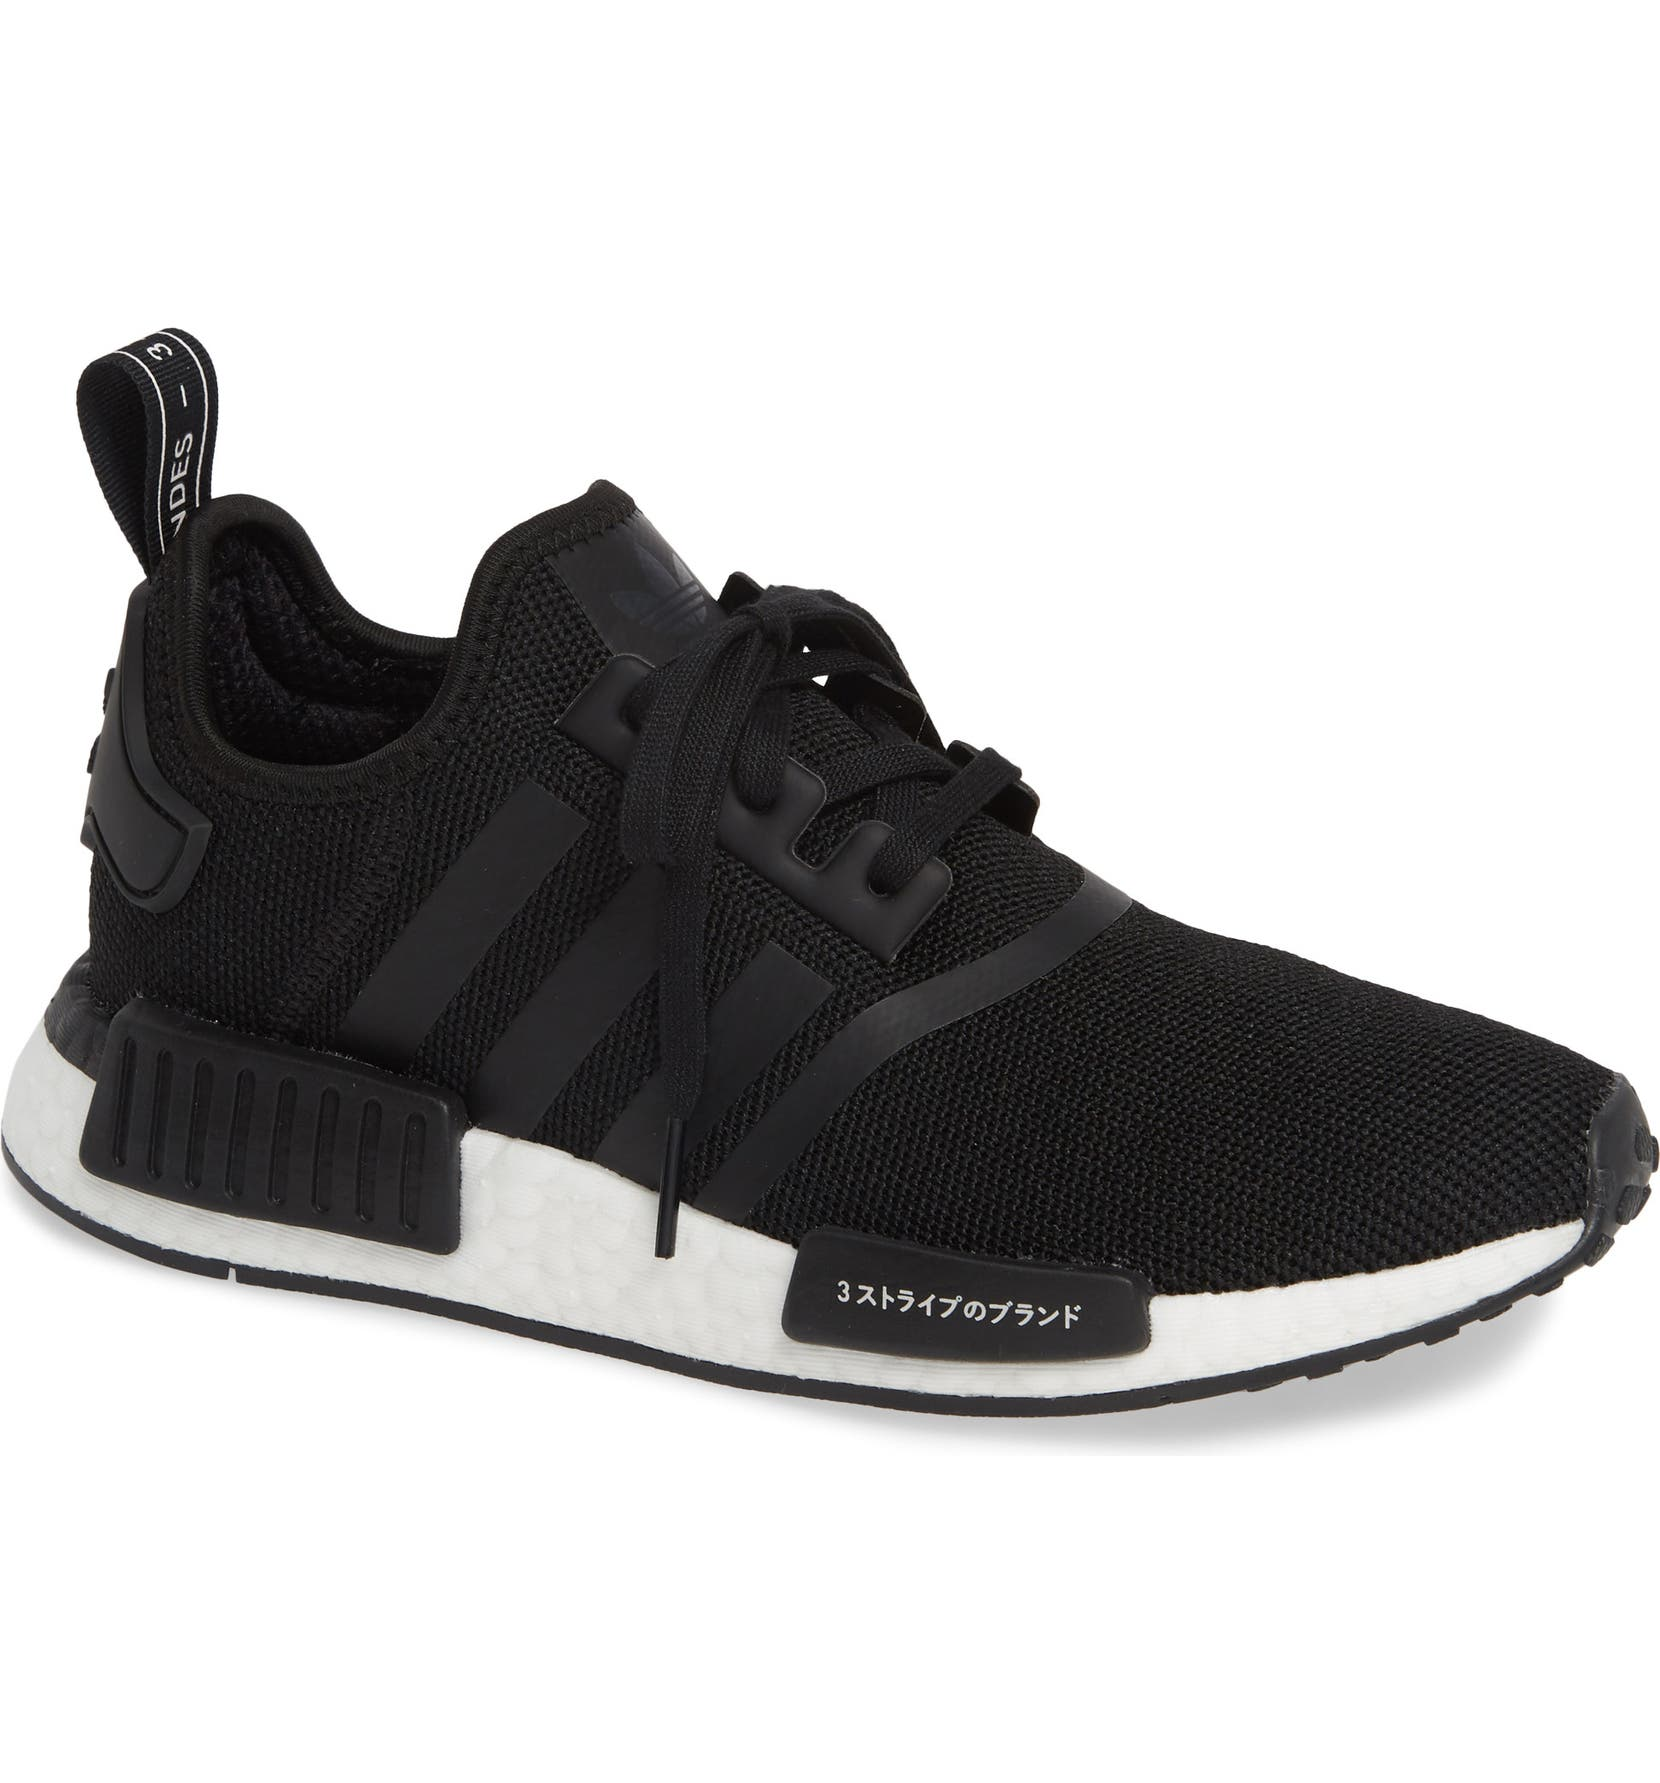 reputable site 76ecf 5a304 NMD R1 Sneaker